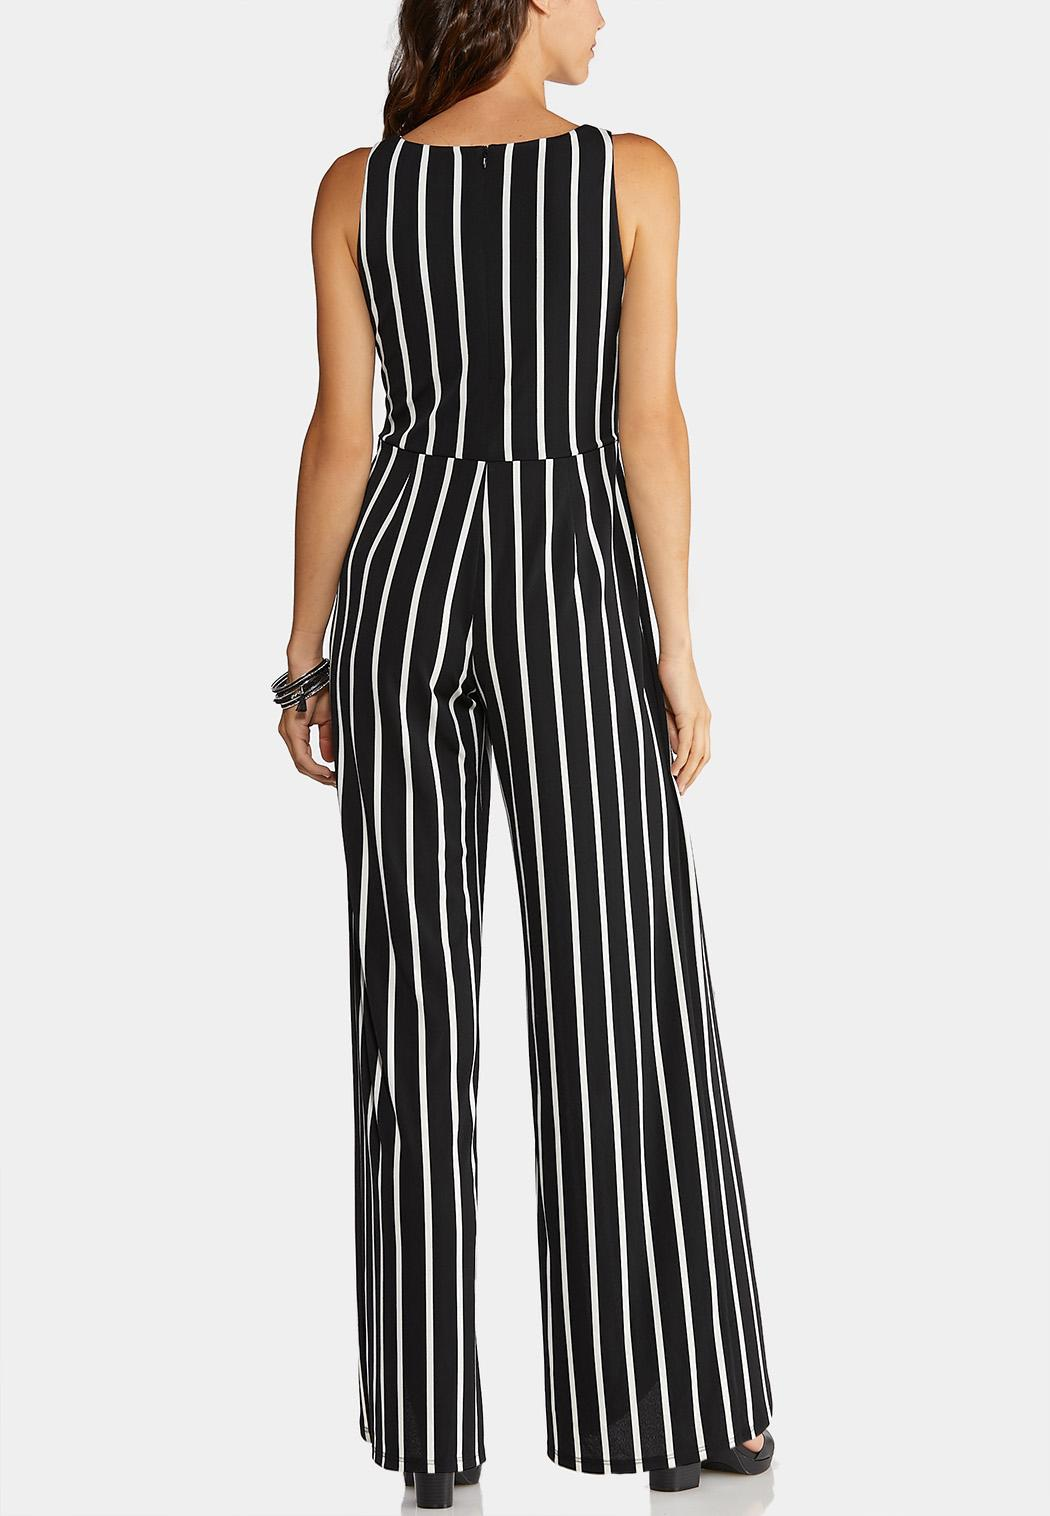 Plus Size Stripe Tie Waist Jumpsuit (Item #43913632)